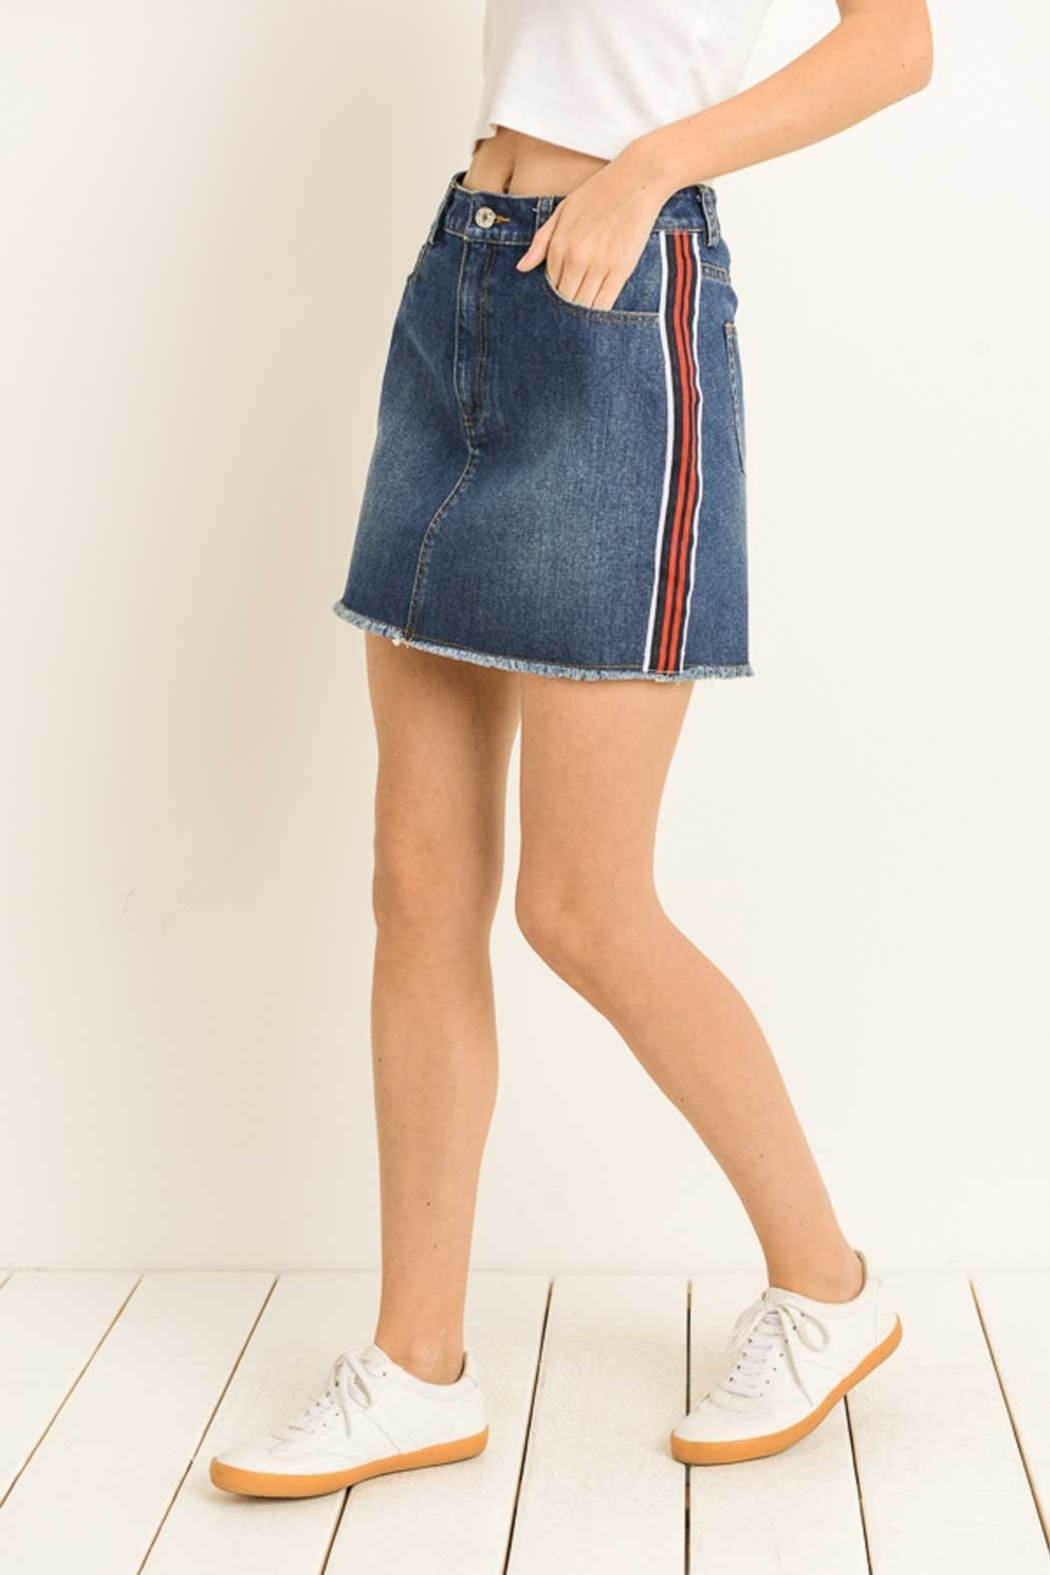 racer-stripe-denim-skirt-blue-3b03a6e8_l